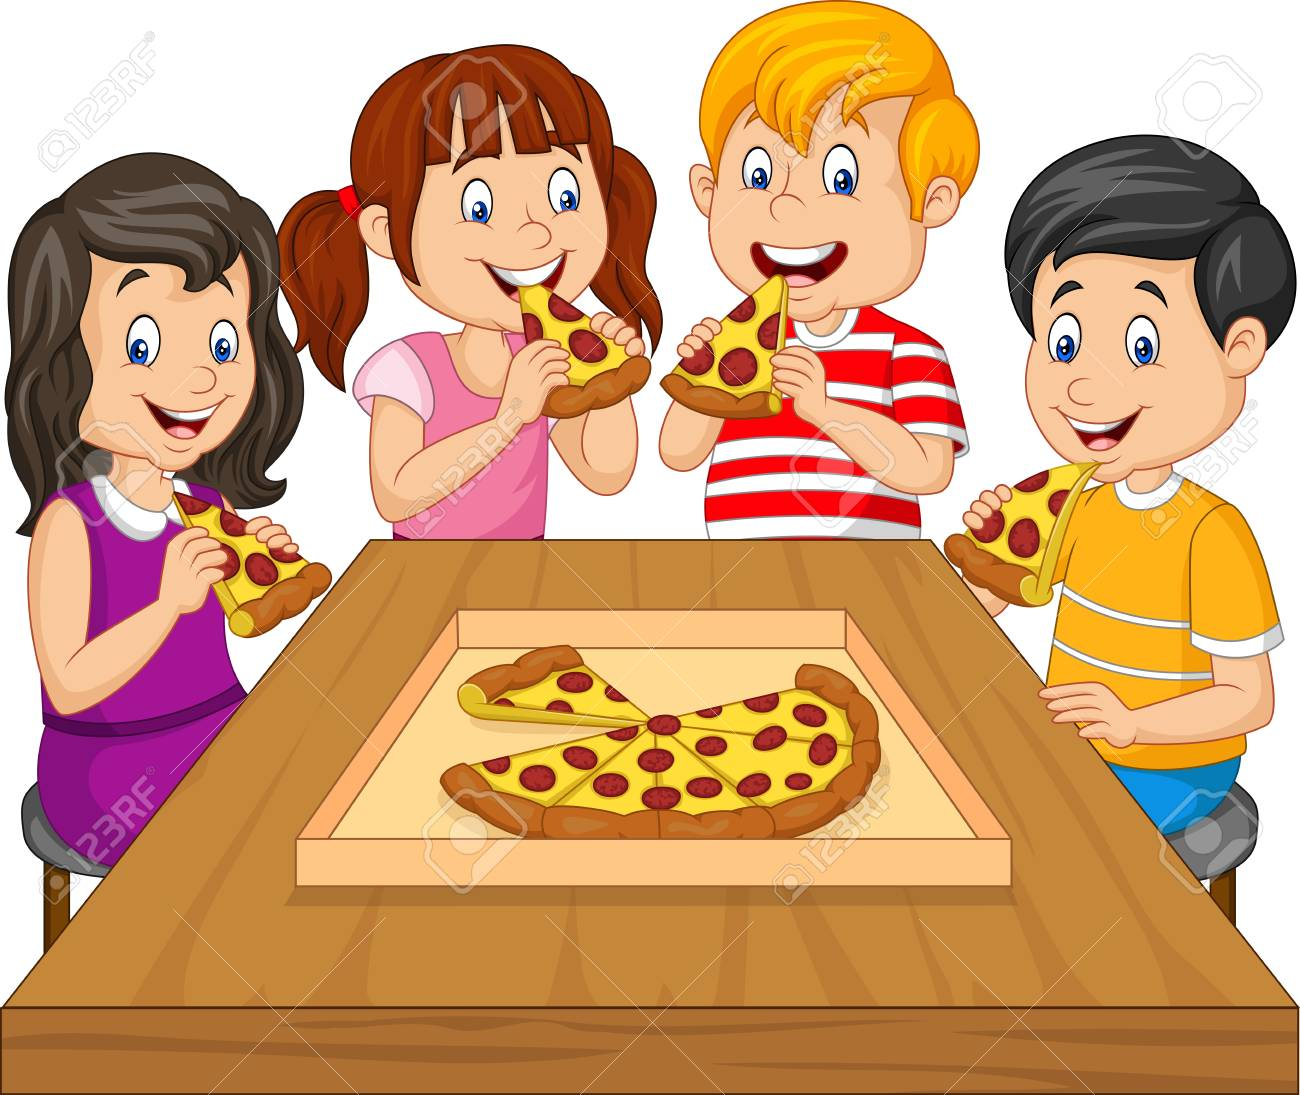 Cartoon kids eating pizza together.